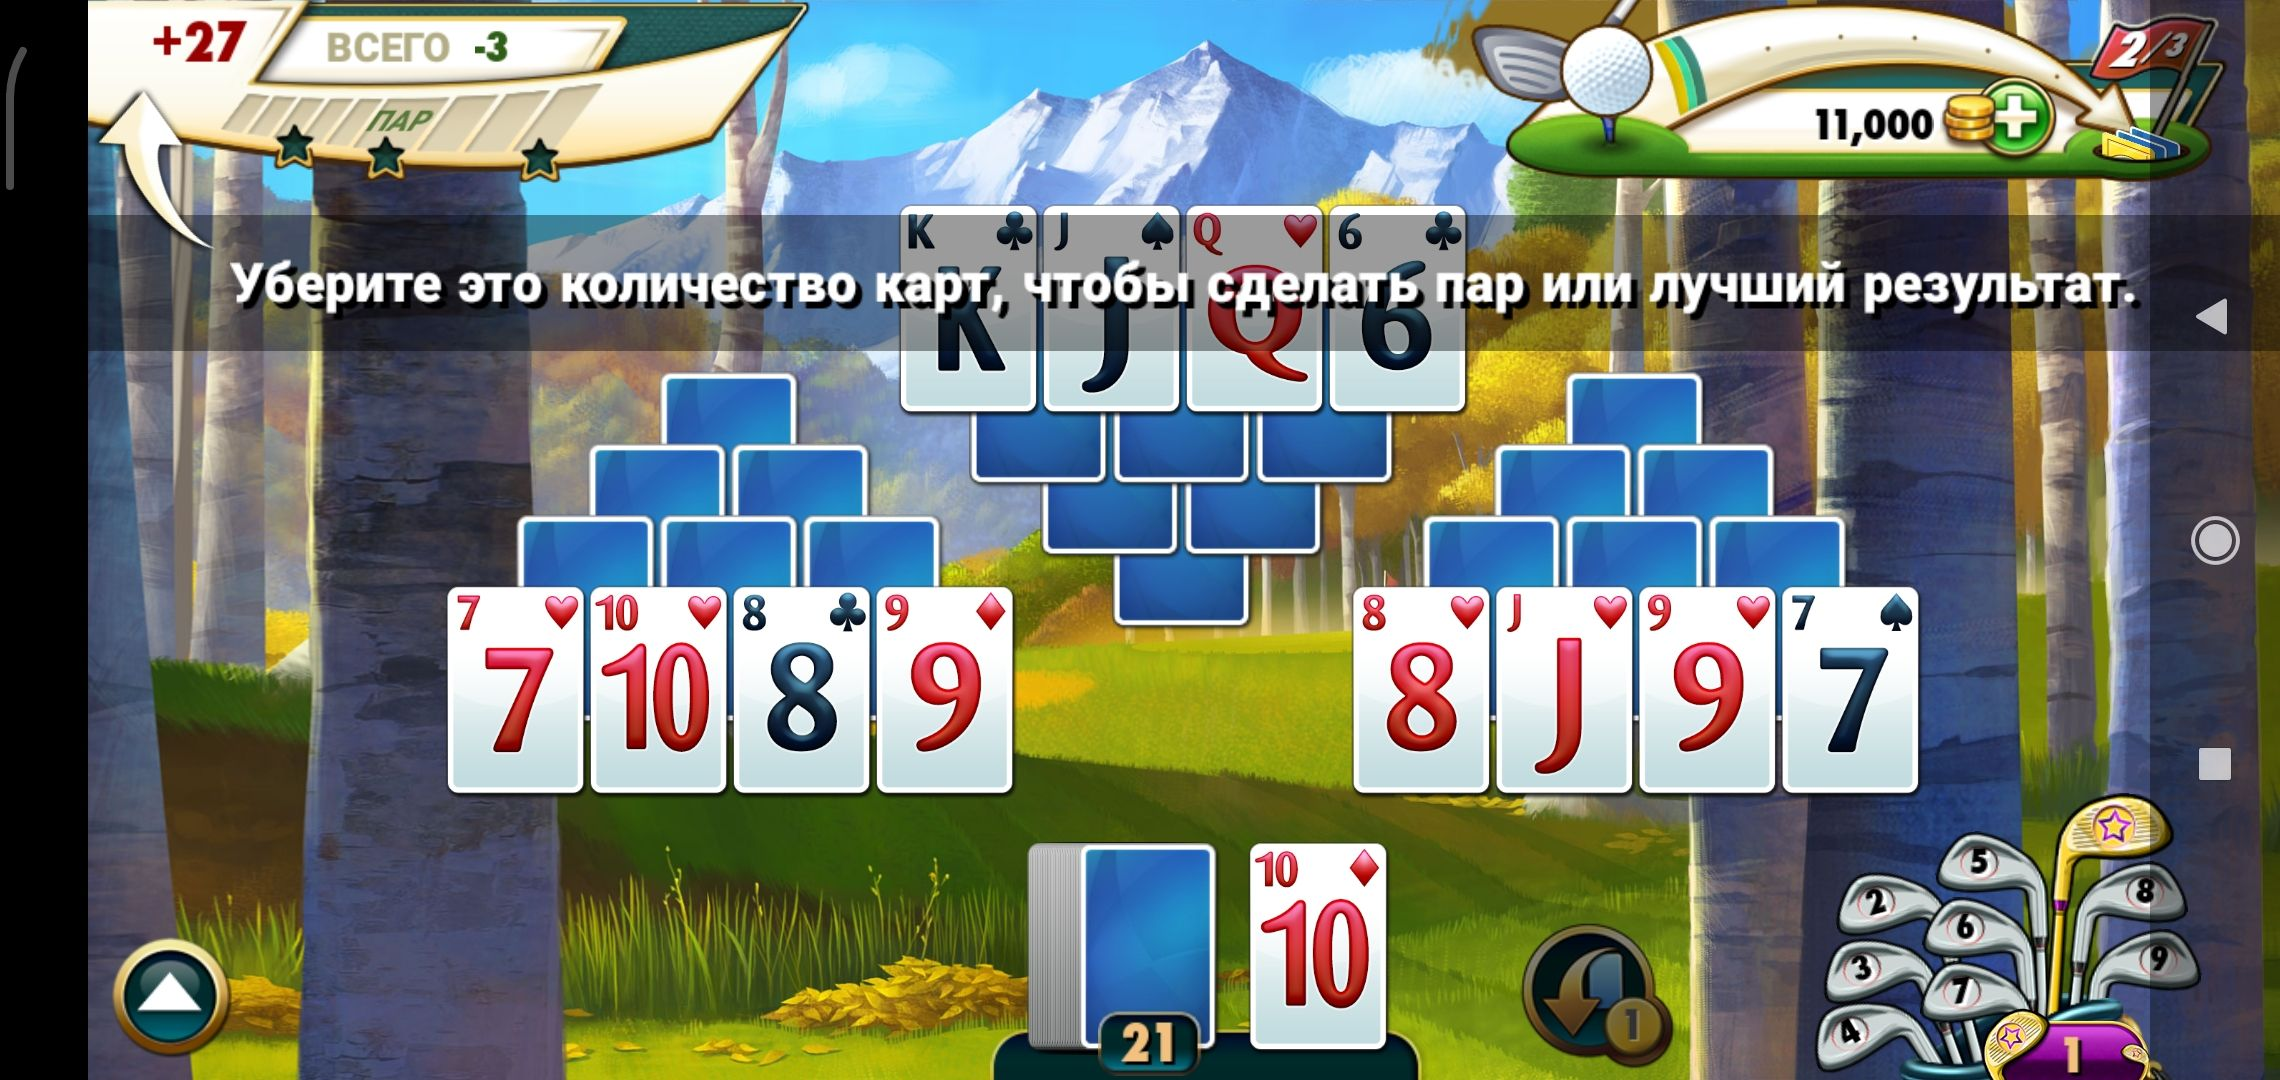 Fairway solitaire in 2020 solitaire card game solitaire